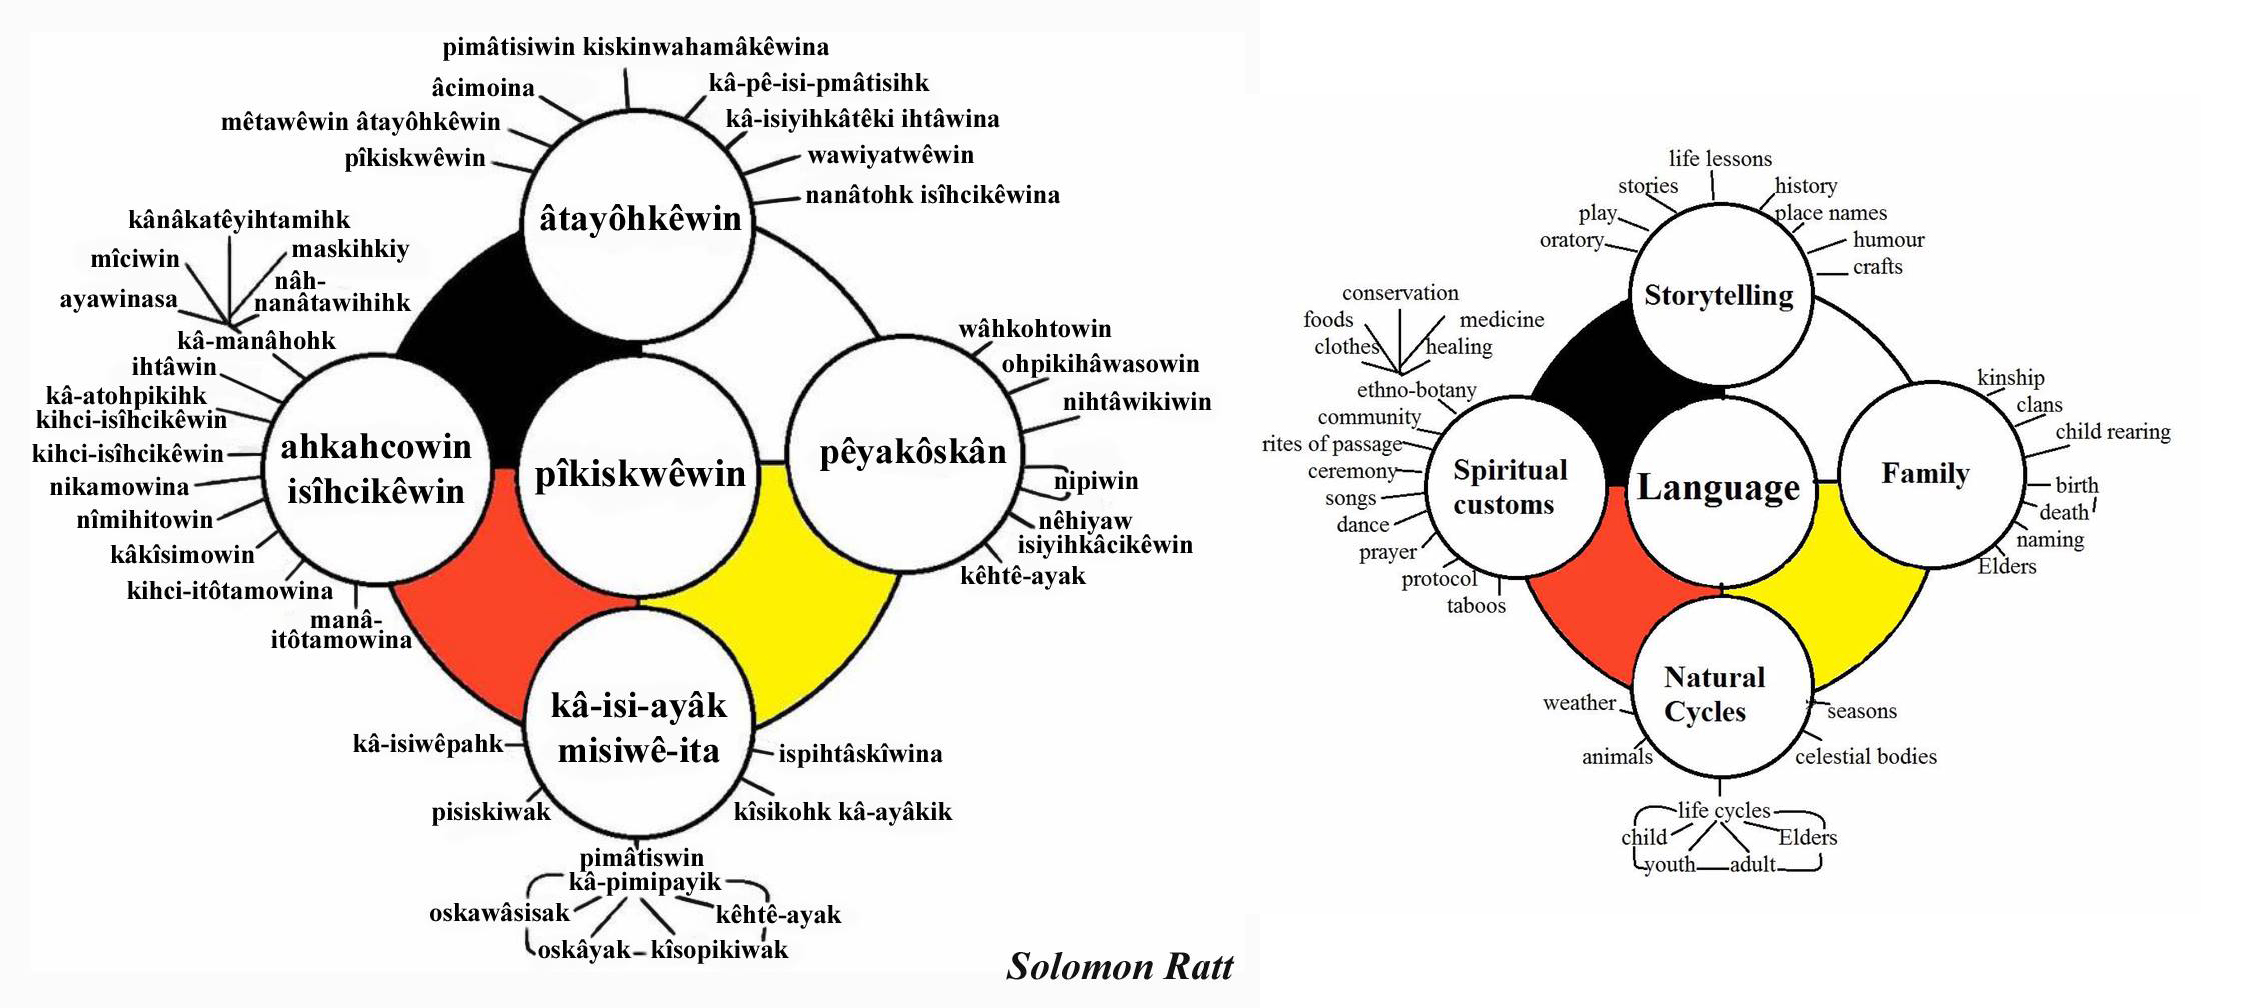 Solomon Ratt: Elements of Cree Culture in y-dialect from Cree Literacy Network; Audio with pronunciation read by Solomon is available at link